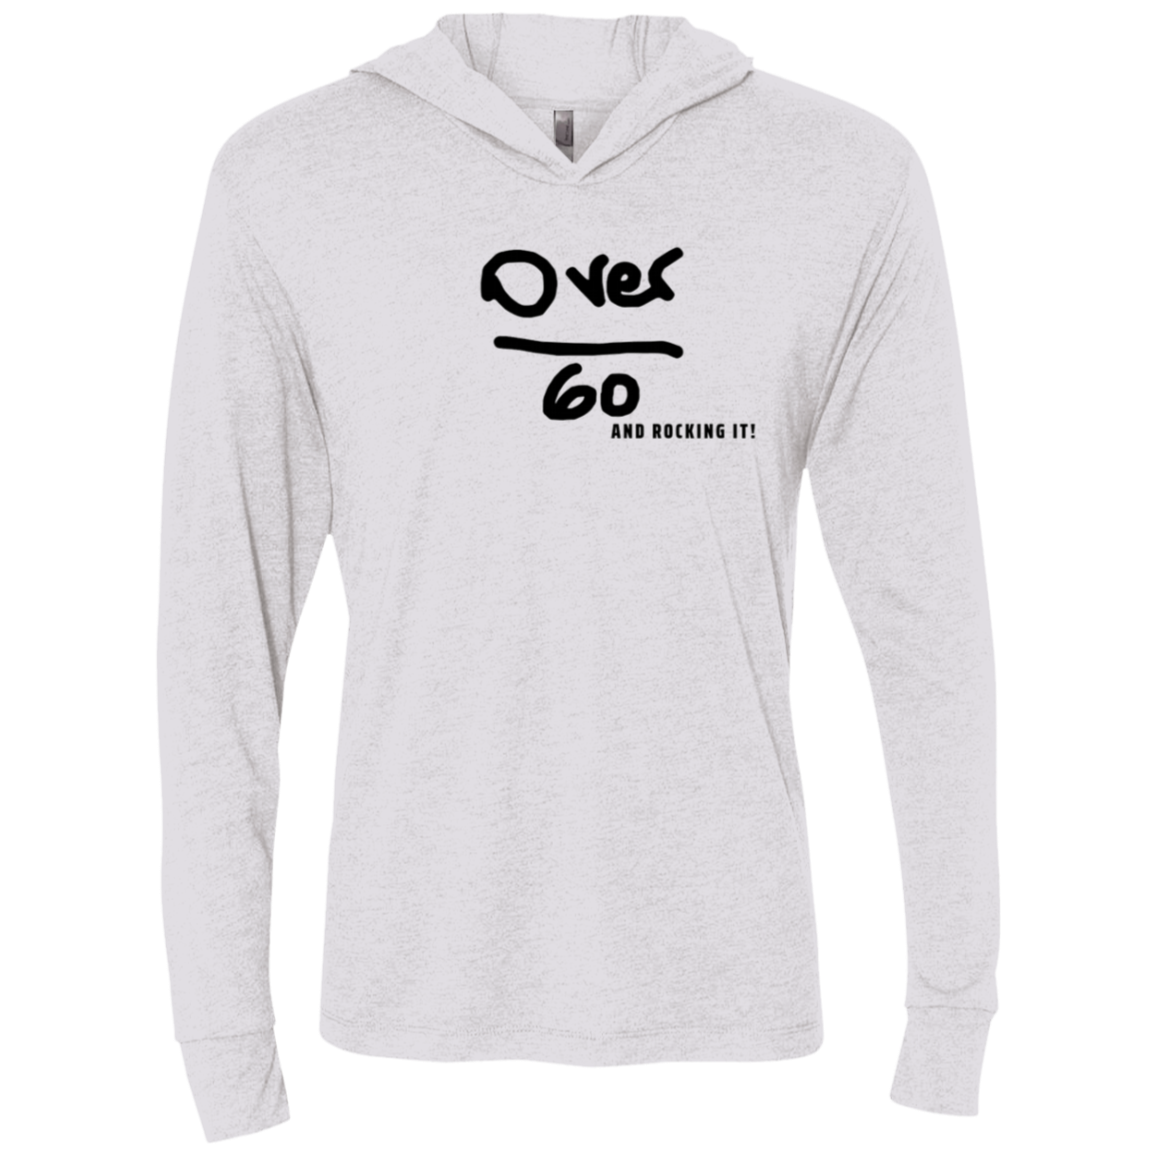 Over 60 and Rocking It ( Unisex) - NL6021 Next Level Triblend LS Hooded T-Shirt